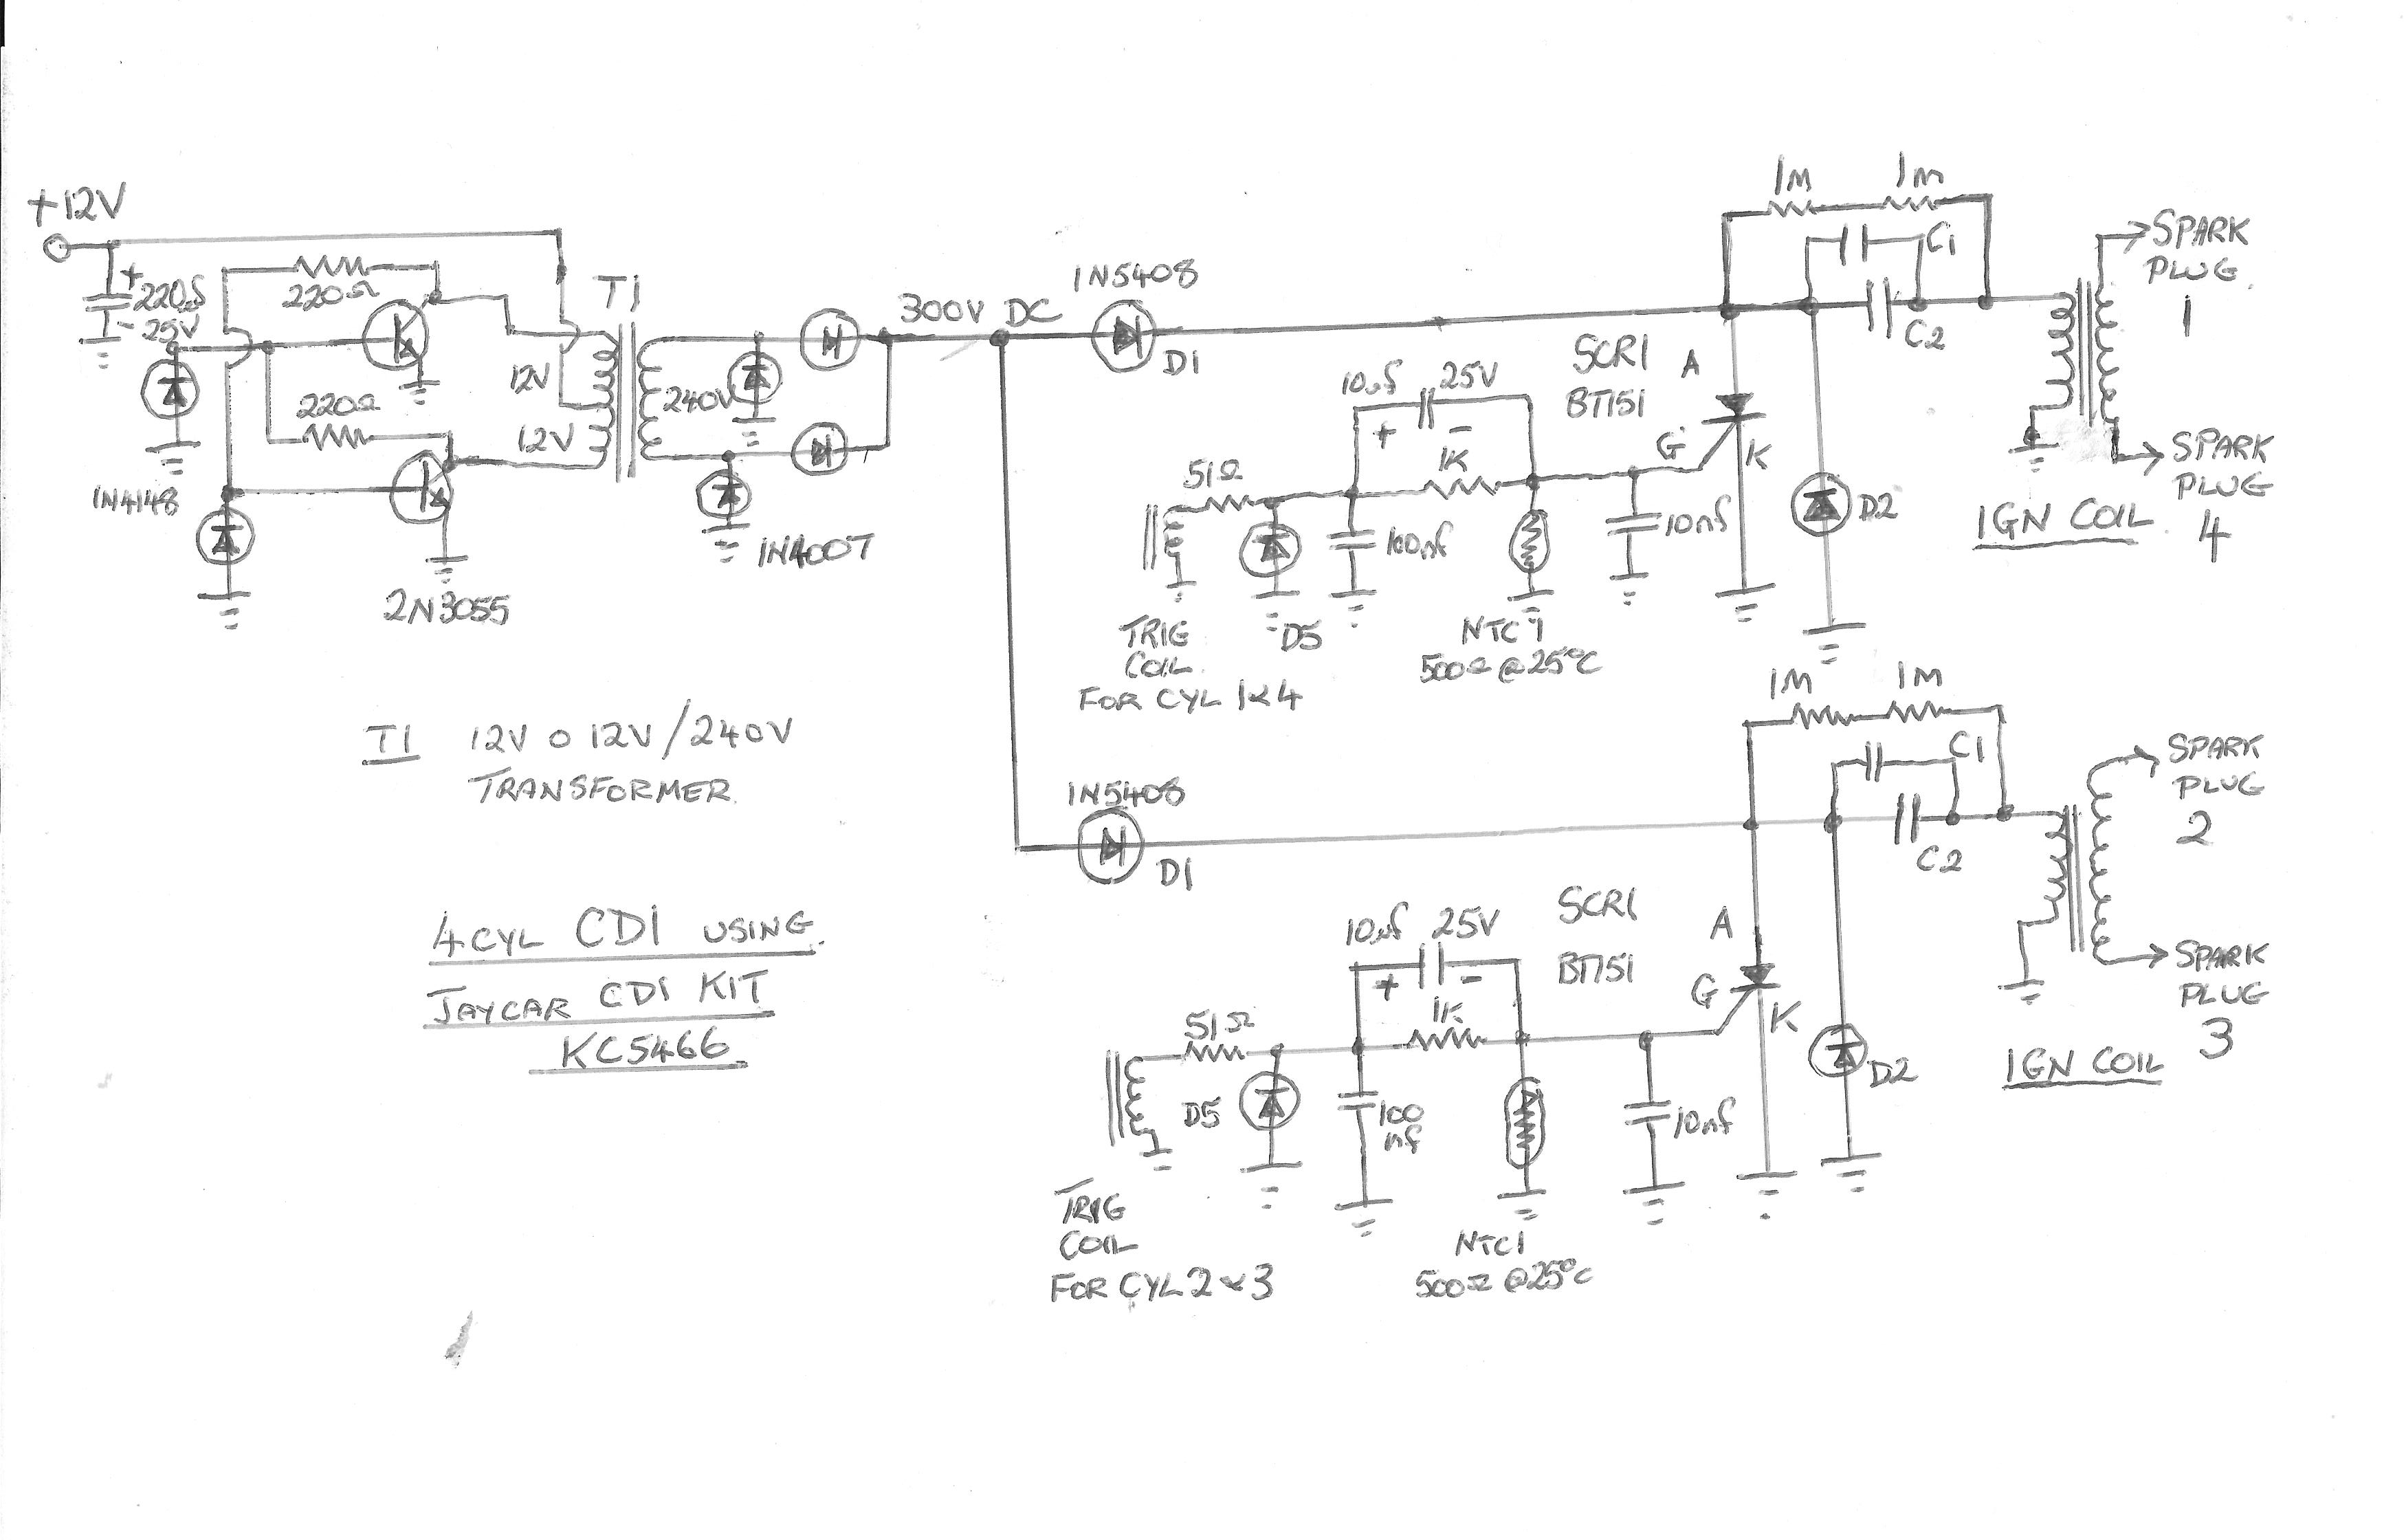 cdi ingnition system please help me build one electronics this is how i would attempt to do it just a rough drawing